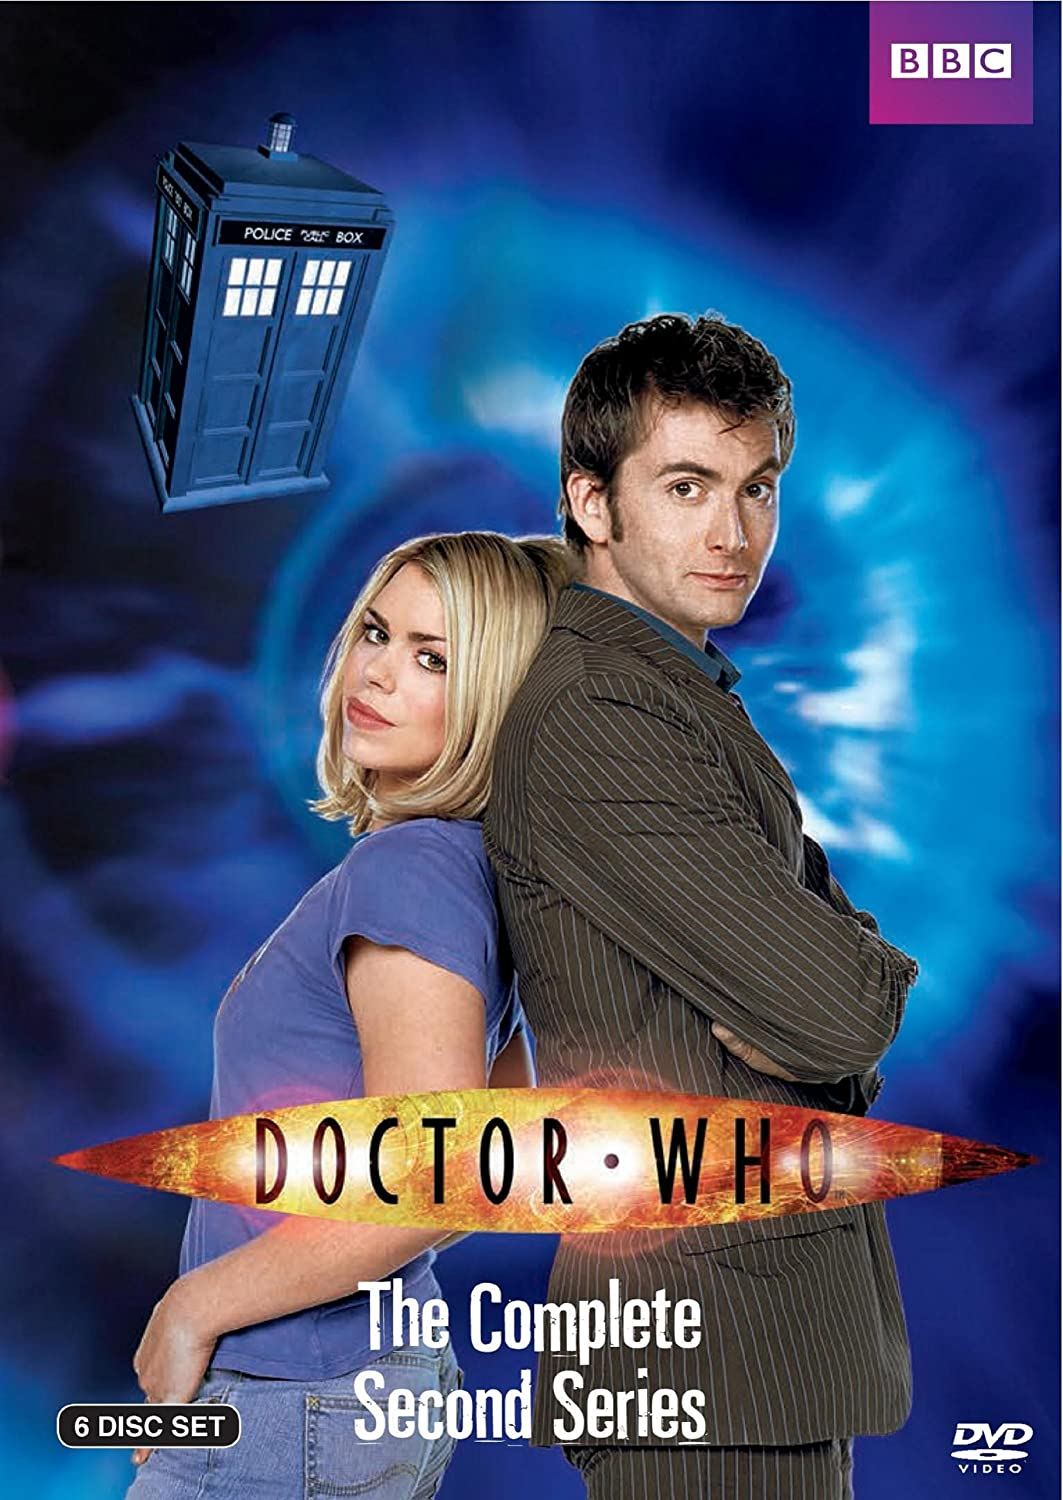 Dr. Who: The Complete Second Series David Tennant BBC Home Entertainment 26251980 British TV